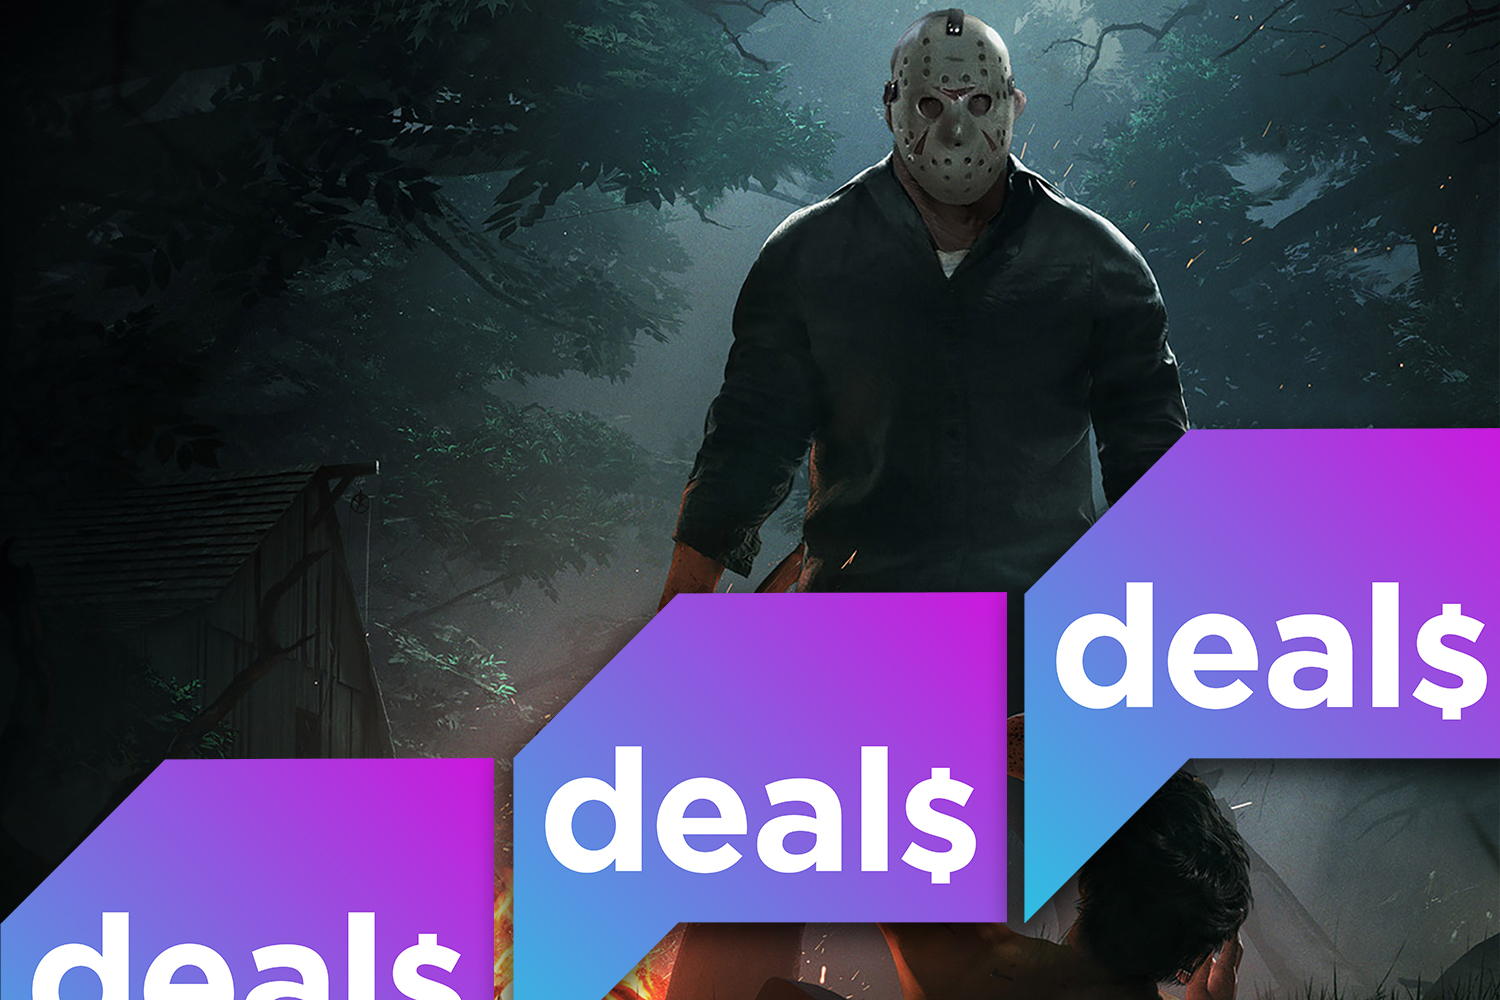 Friday the 13th horror game sale, Switch Ring Fit Adventure pre-orders, and more of this week's best deals